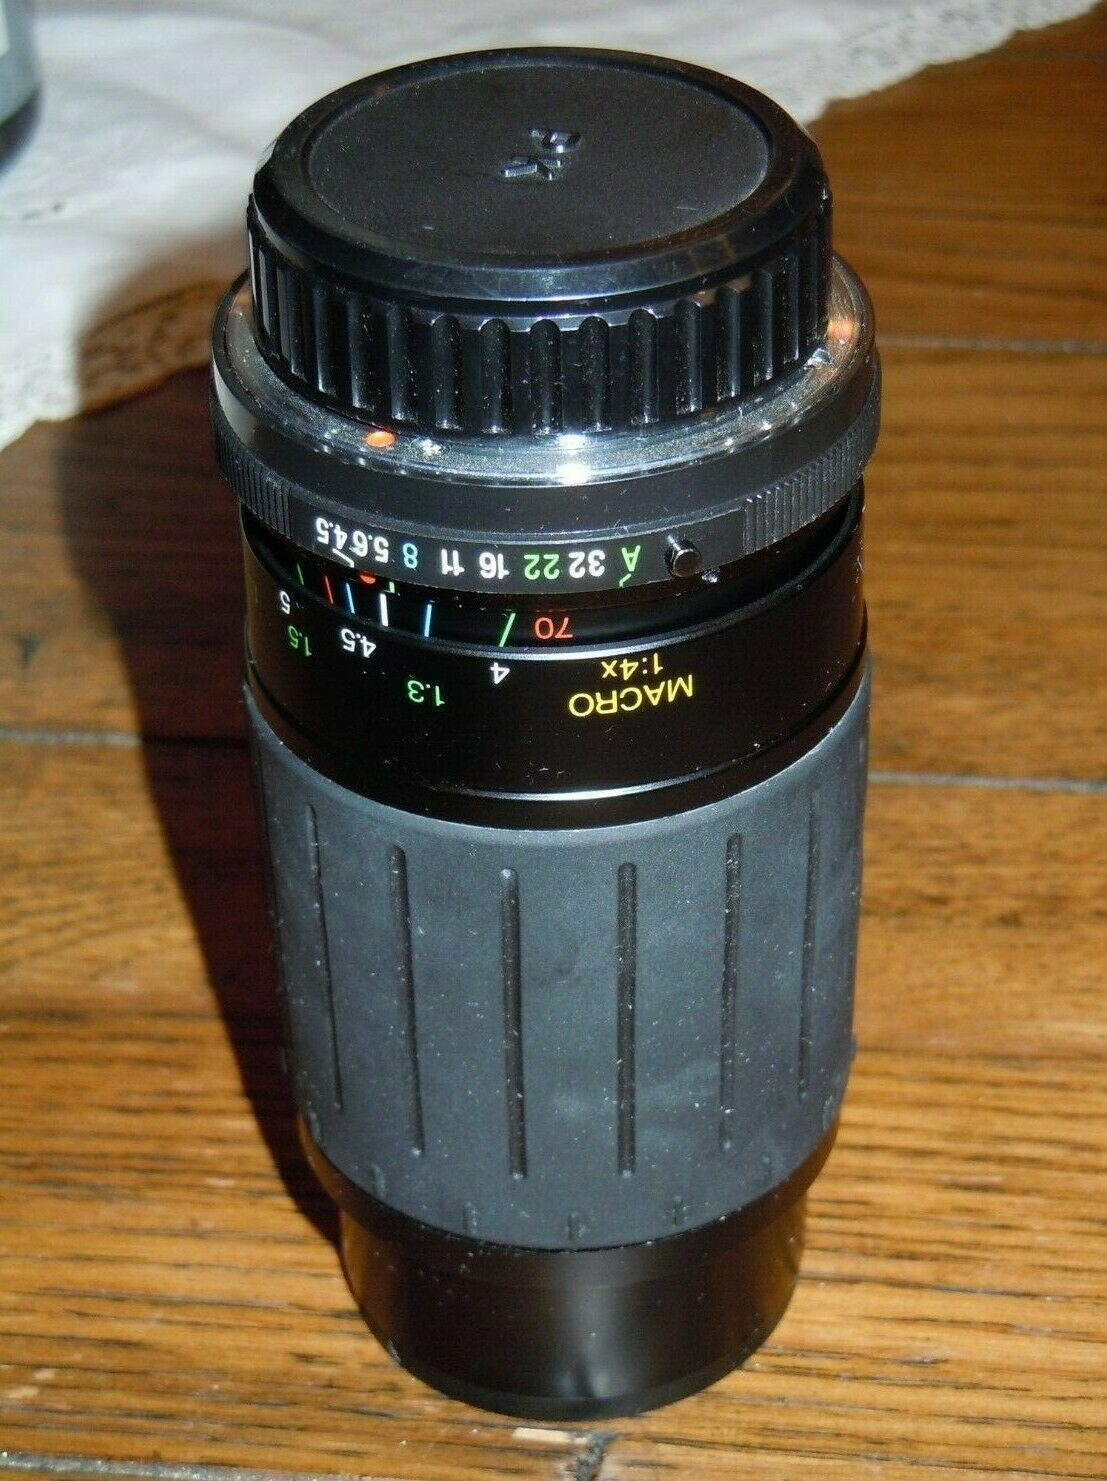 Primary image for Phoenix 70-210mm f/4.5-5.6 Zoom Lens & Hoya Skylight Filter (Unknown Mount)